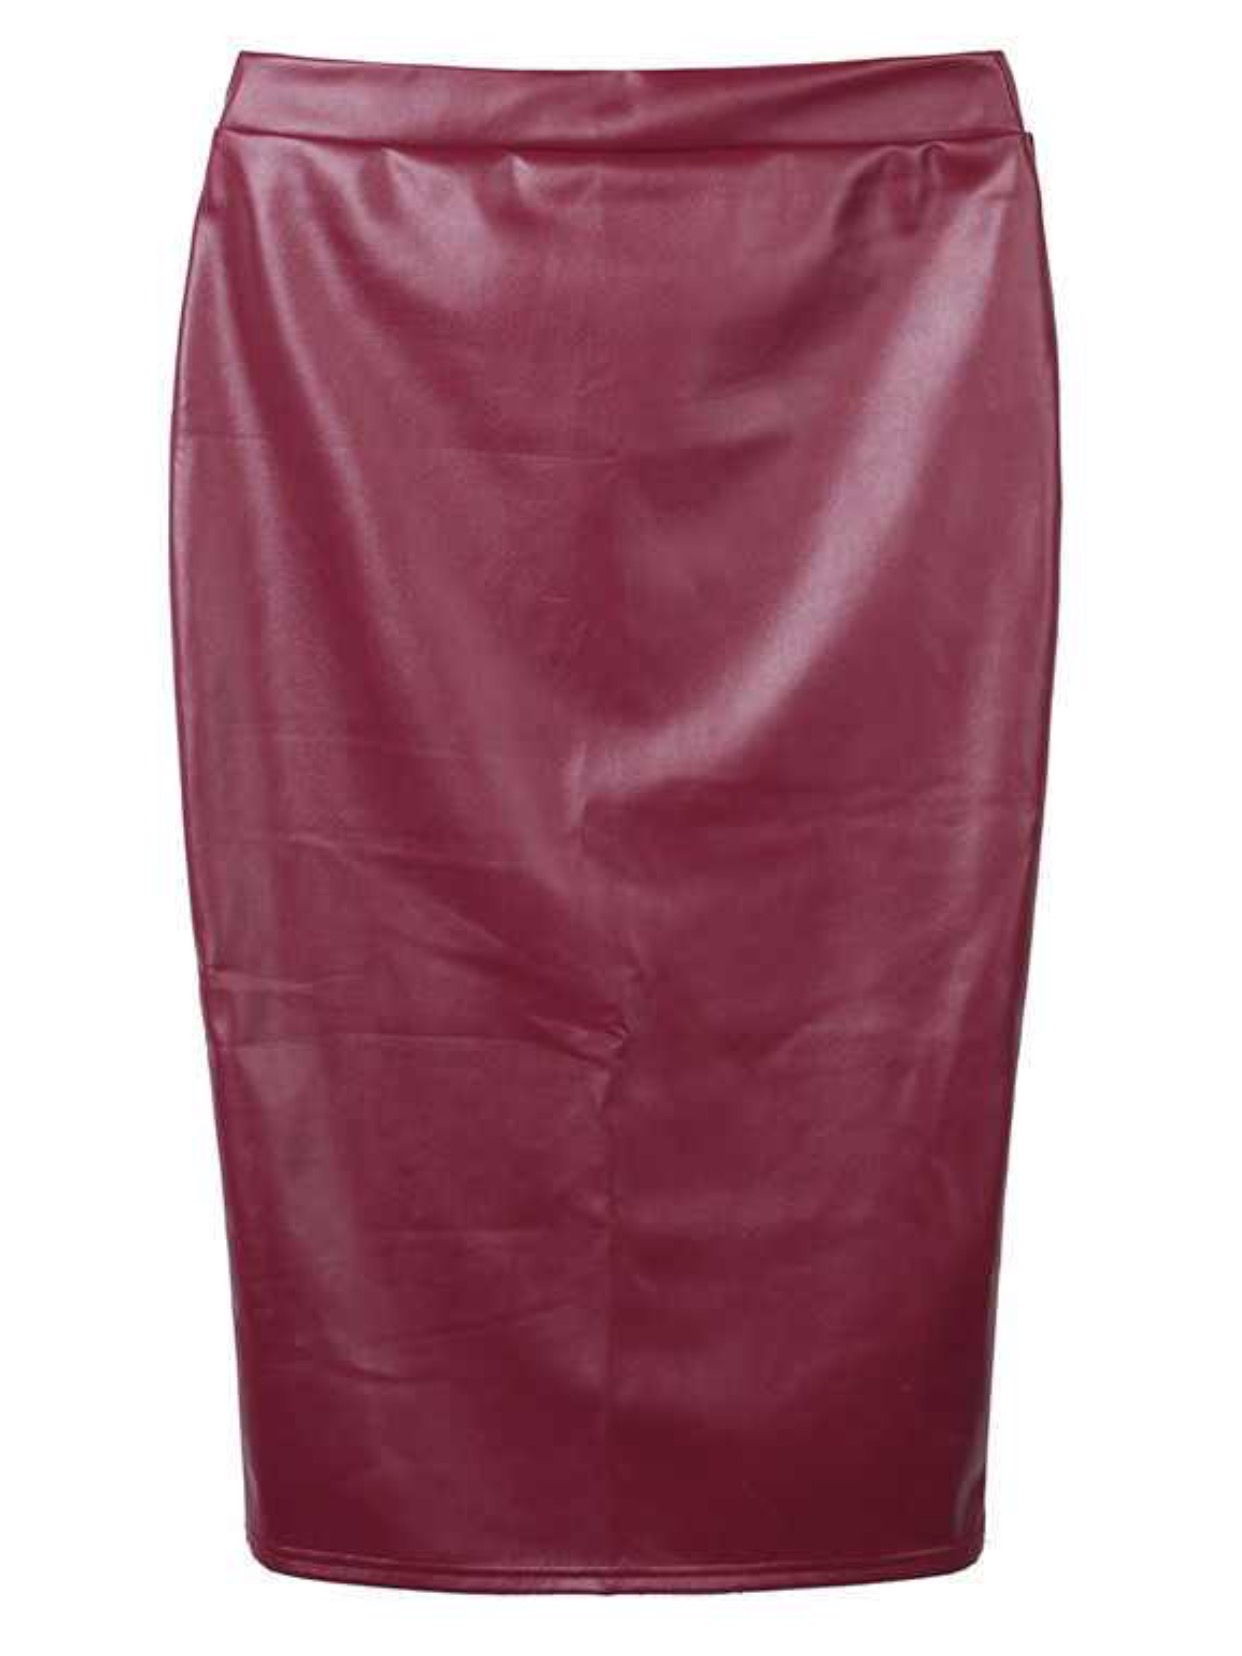 burgundy leather midi skirt 183 trendy wendy z boutique